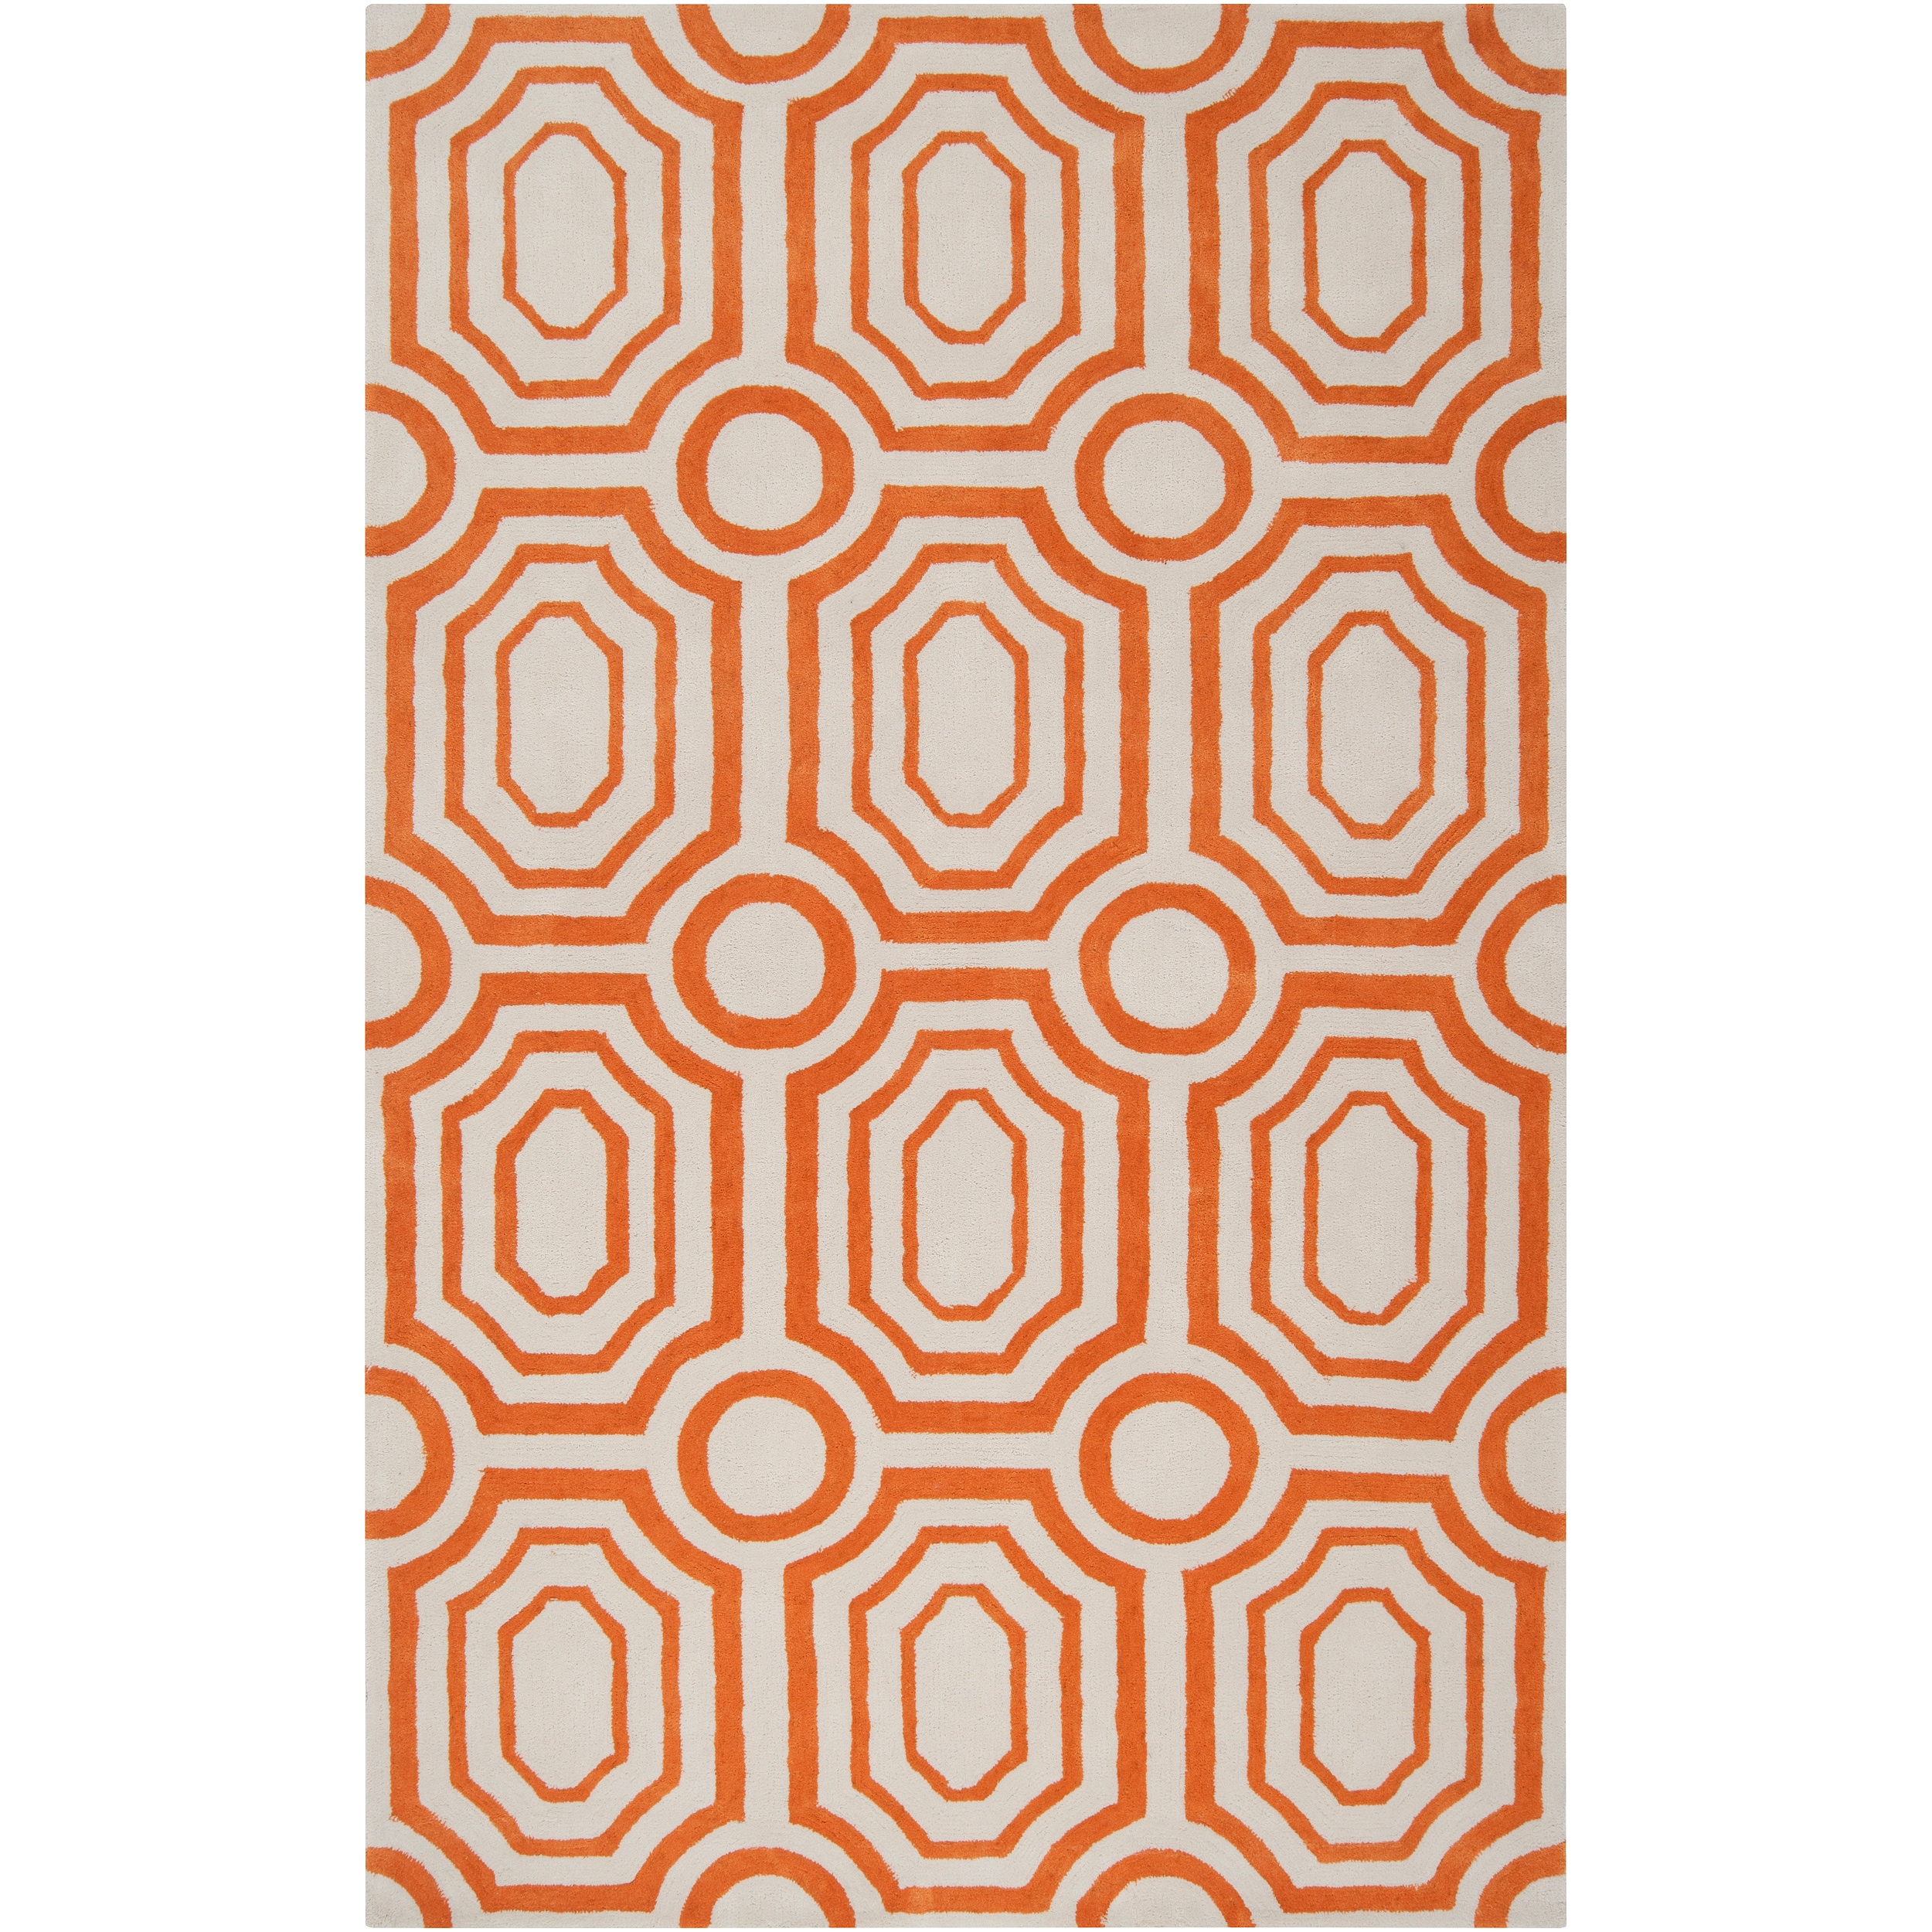 Hand-tufted Orange Hudson Park Polyester Rug (3'3 x 5'3)